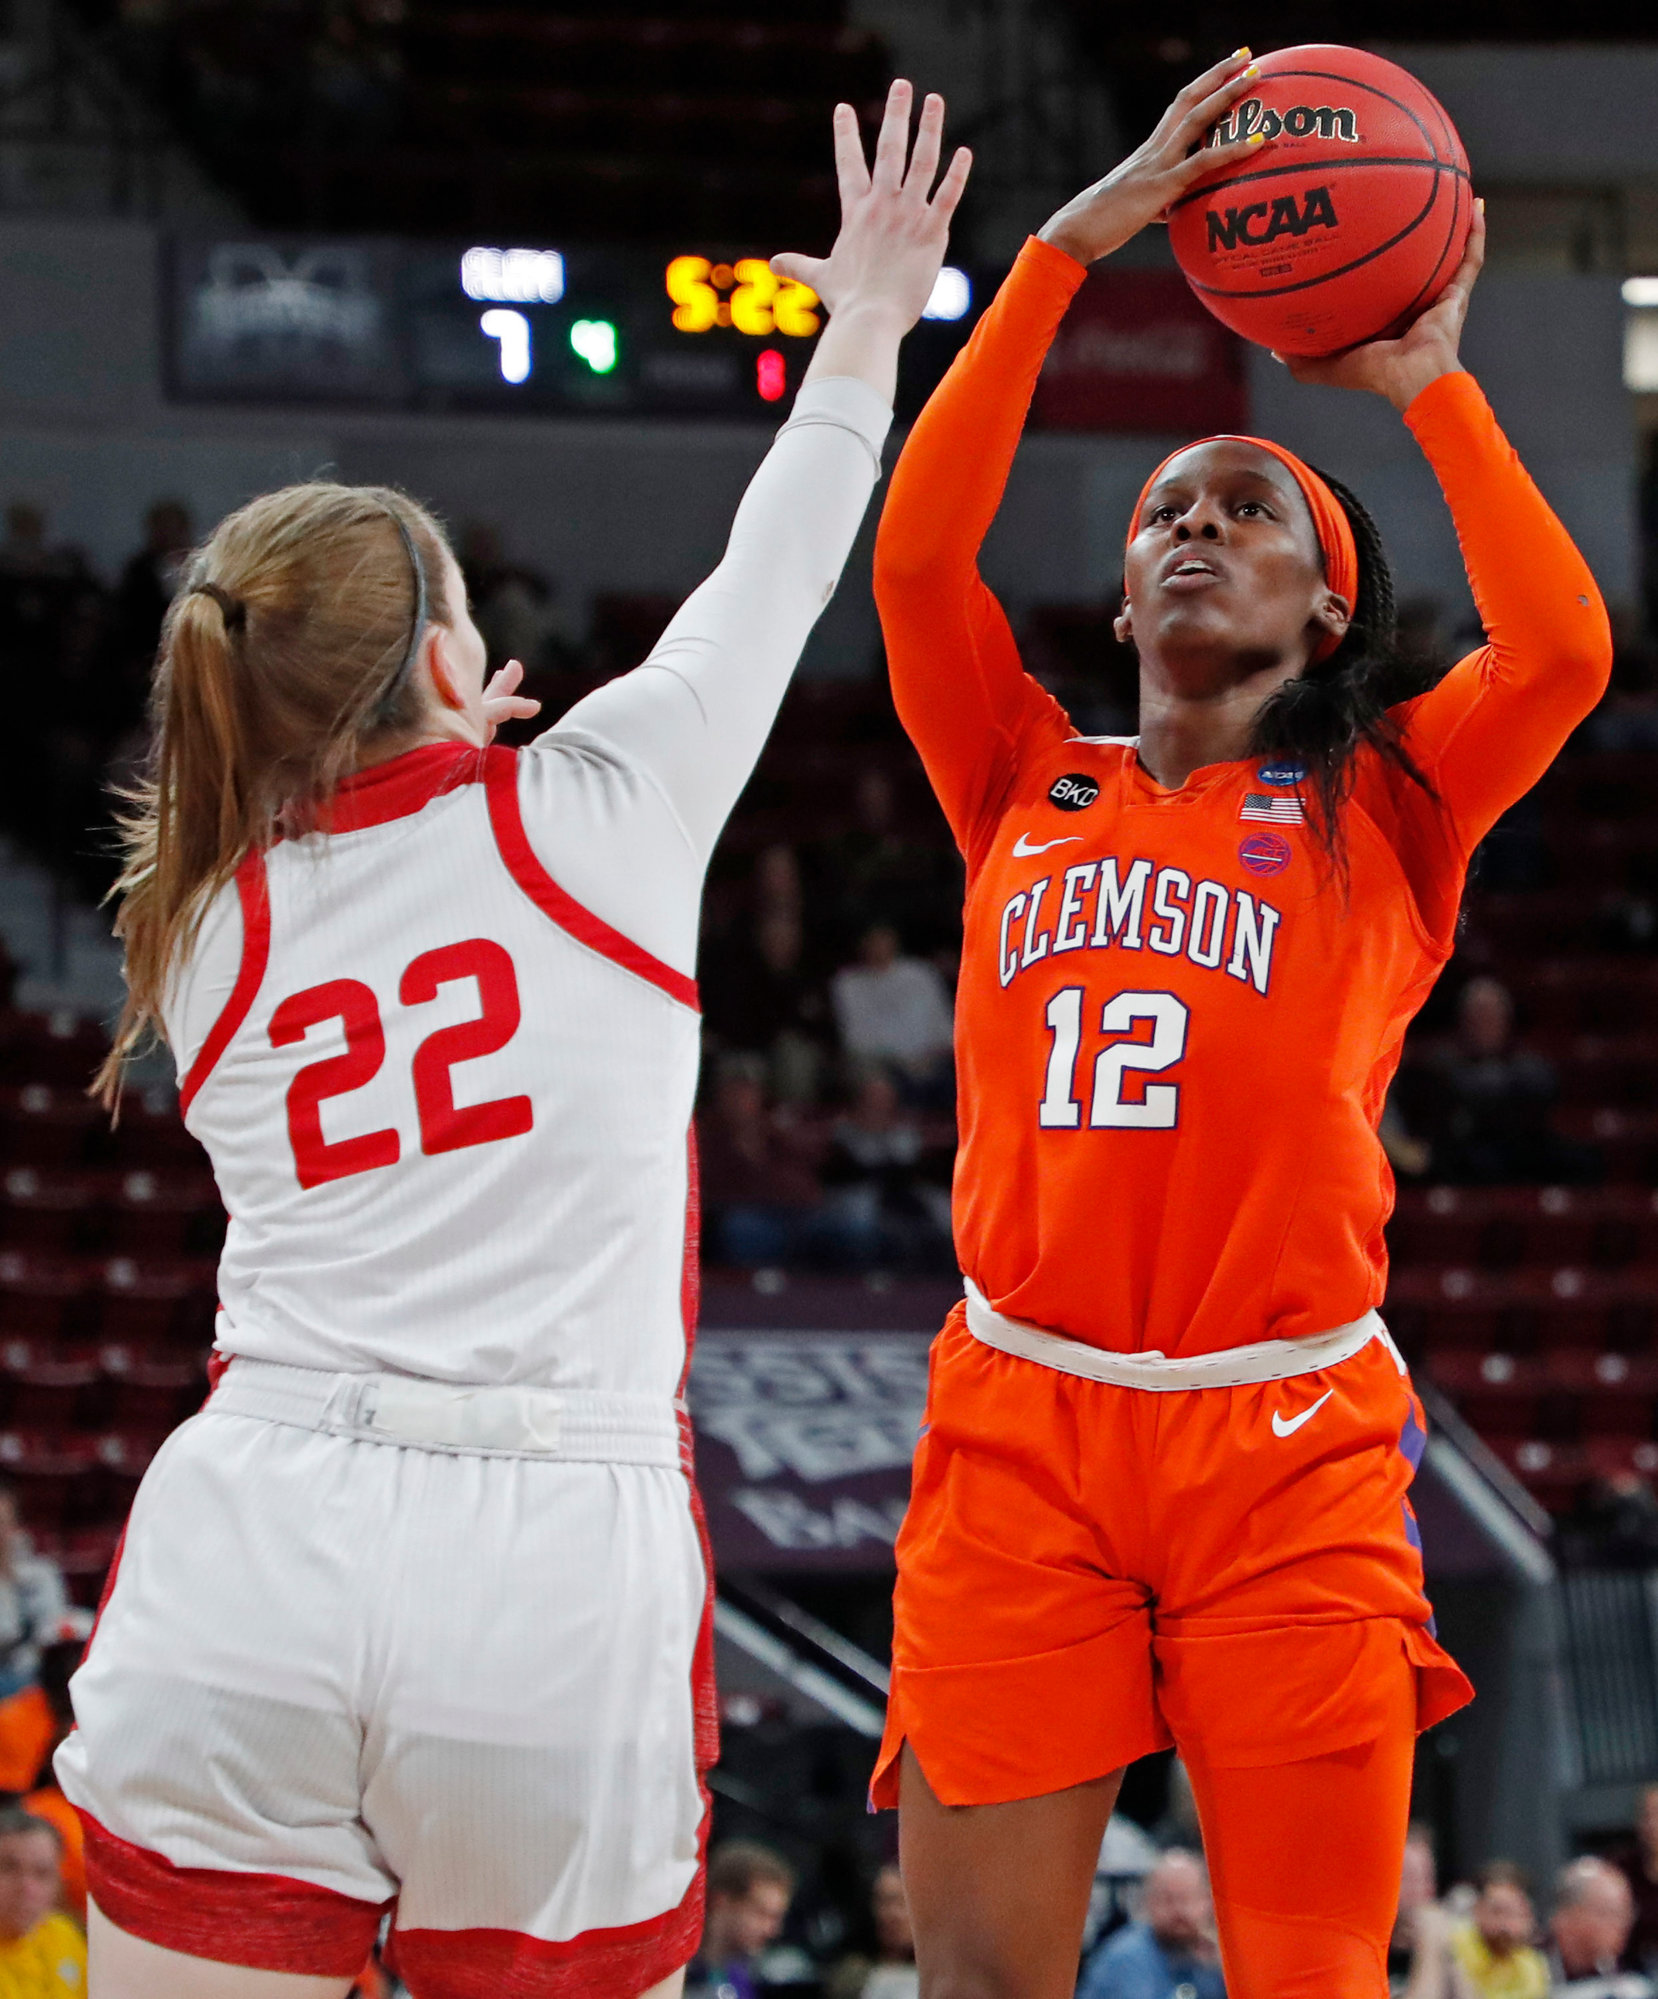 Clemson guard Aliyah Collier (12) attempts a shot while South Dakota guard Chloe Lamb (22) tries to block during a first round women's college basketball game in the NCAA Tournament in Starkville, Miss., Friday, March 22, 2019. (AP Photo/Rogelio V. Solis)